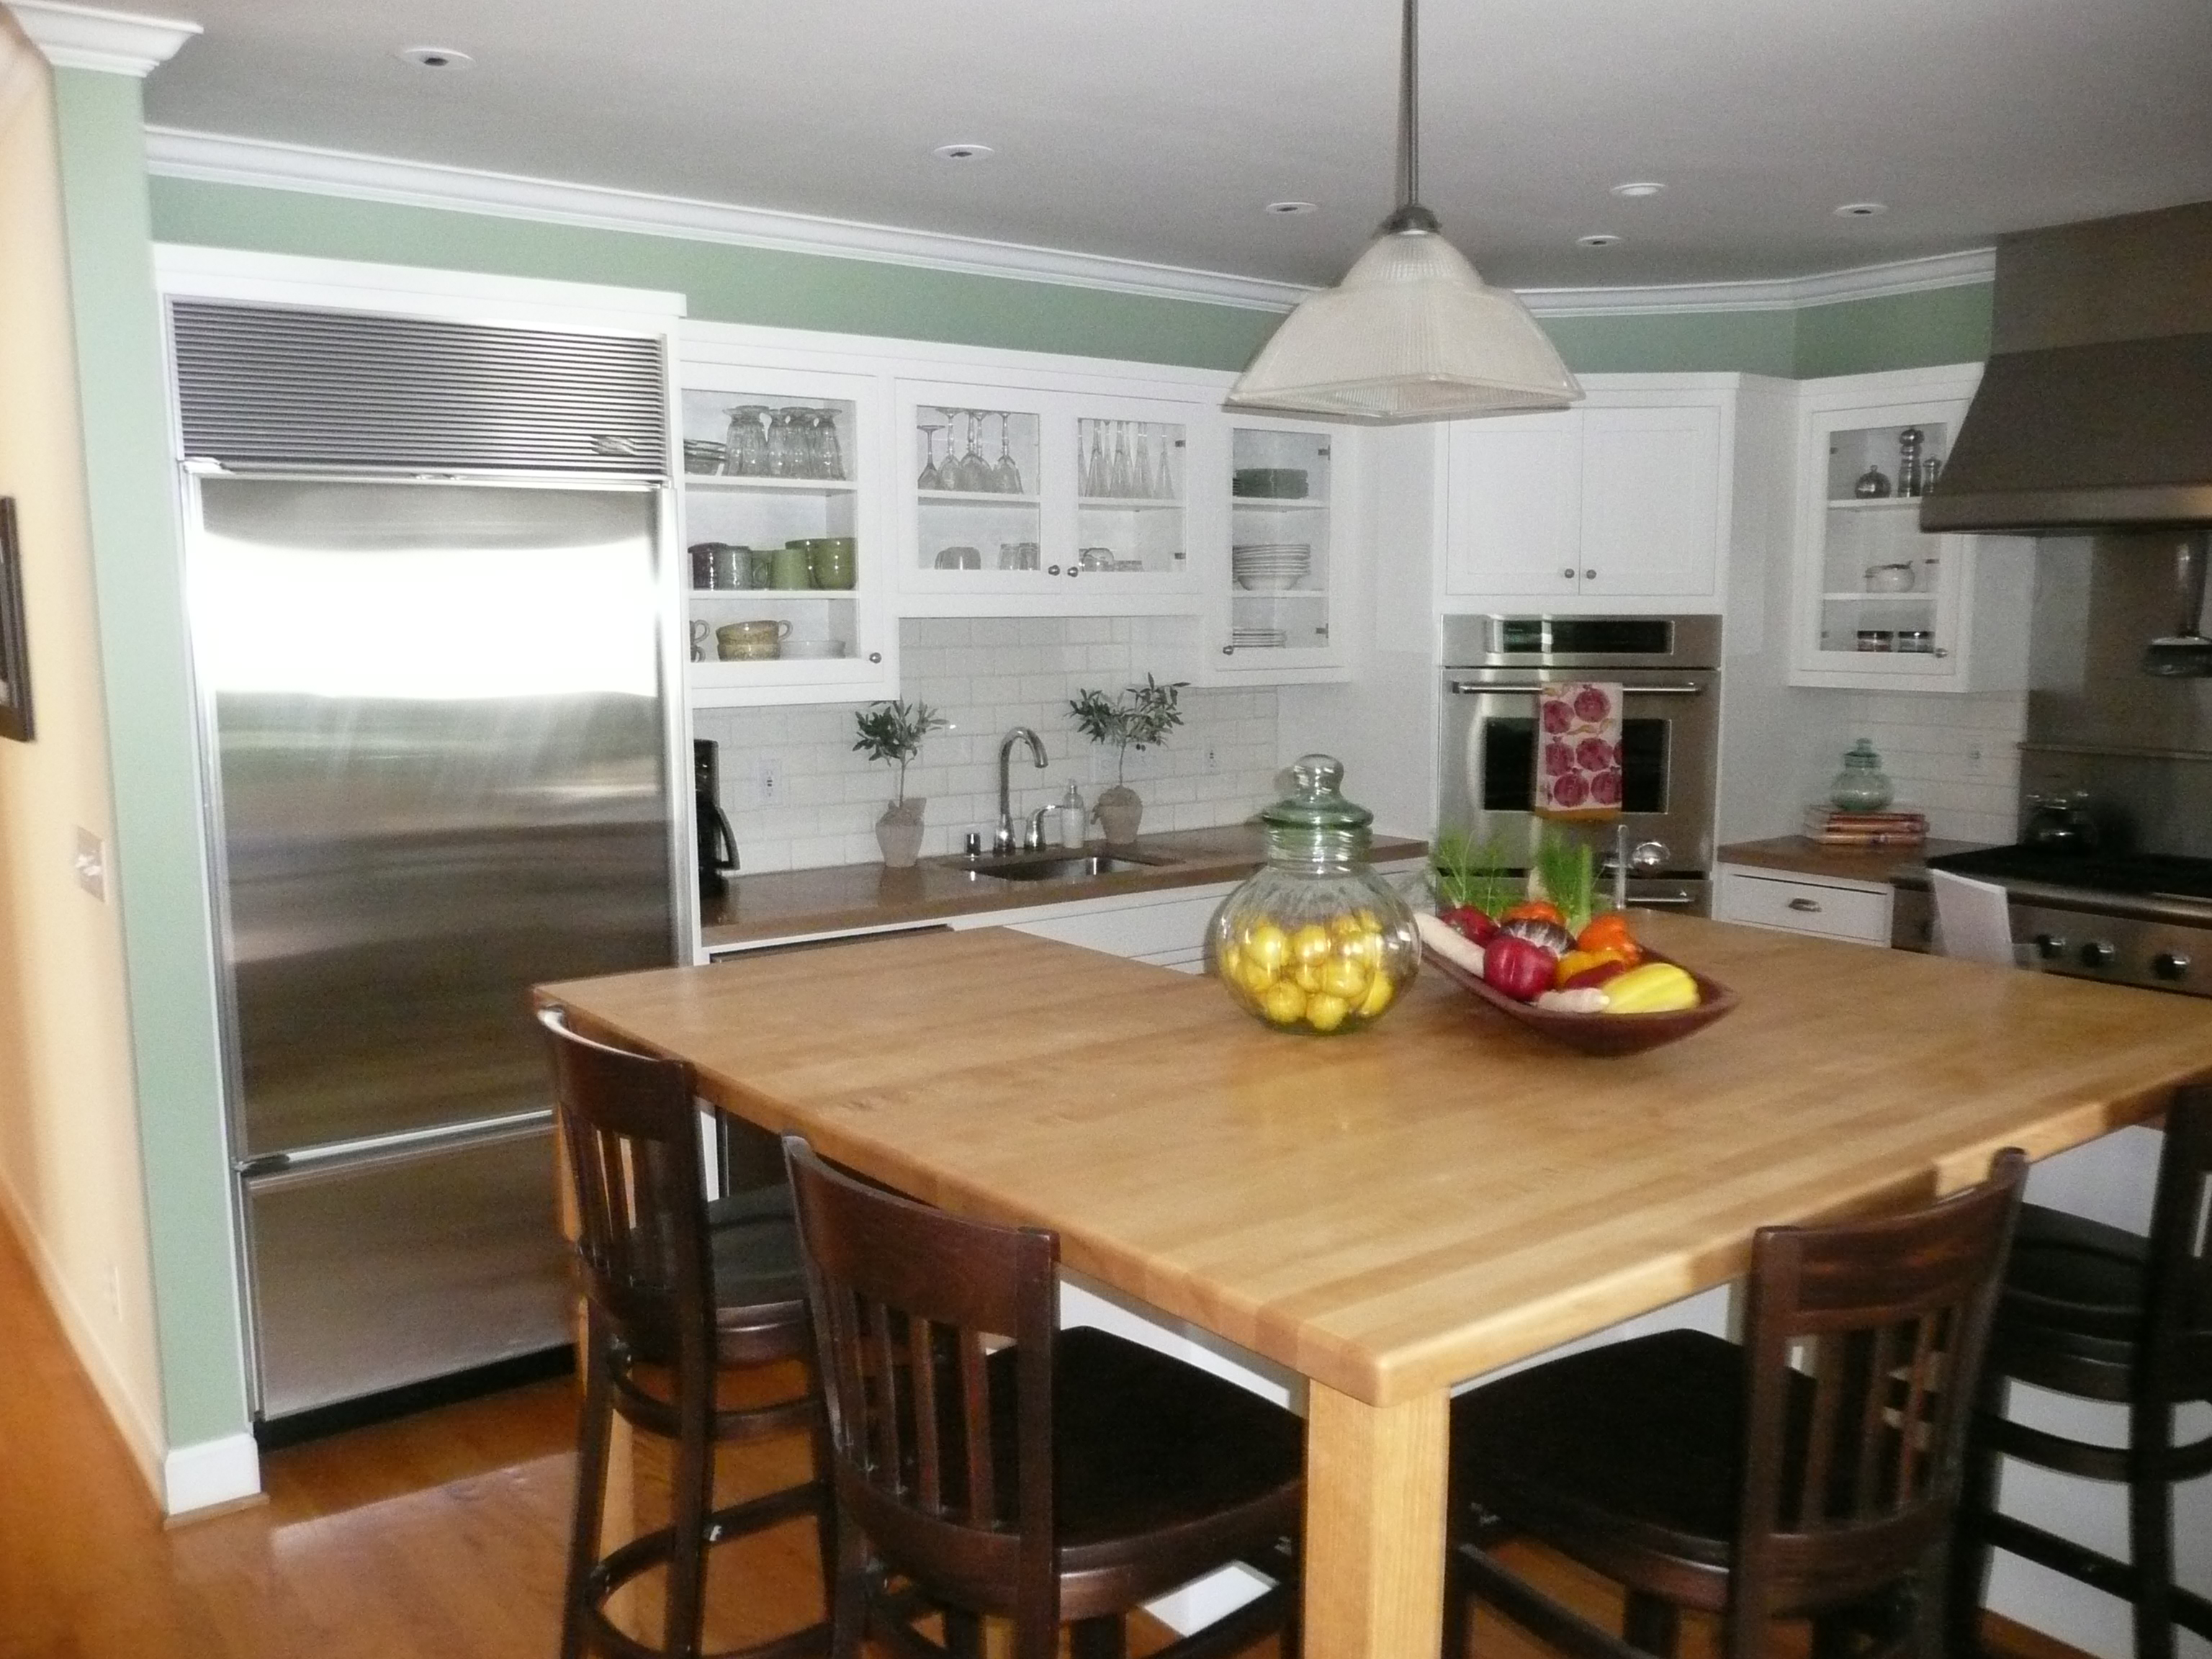 Having Fruits And Vegetables Displayed In A Feng Shui Kitchen Allows The  Balancing Of Yin And